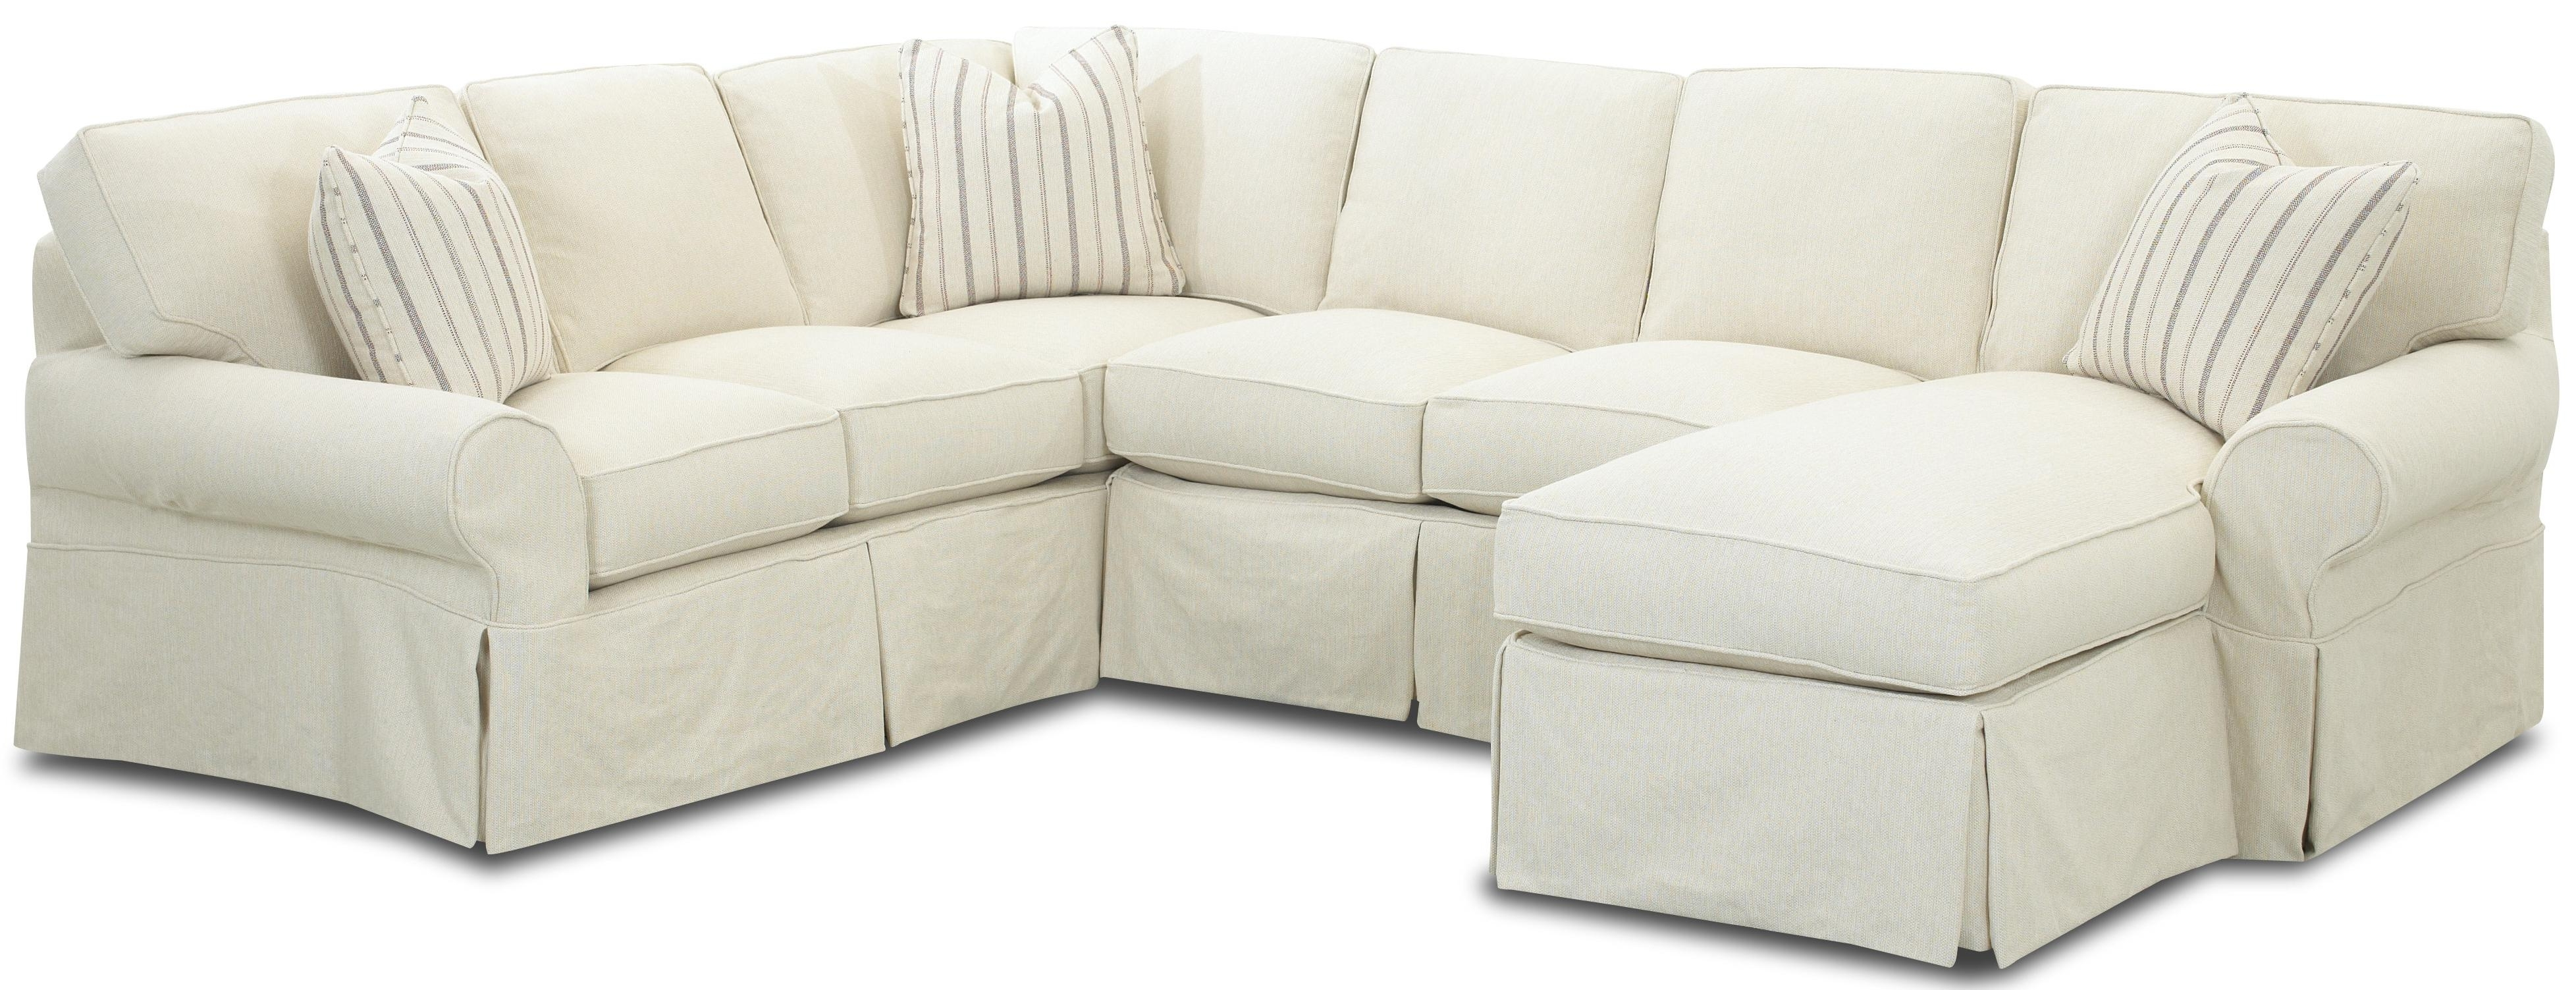 Most Current Best Slipcover Sectional Sofa With Chaise 75 In Office Sofa Ideas Intended For Chaise Slipcovers (View 5 of 15)